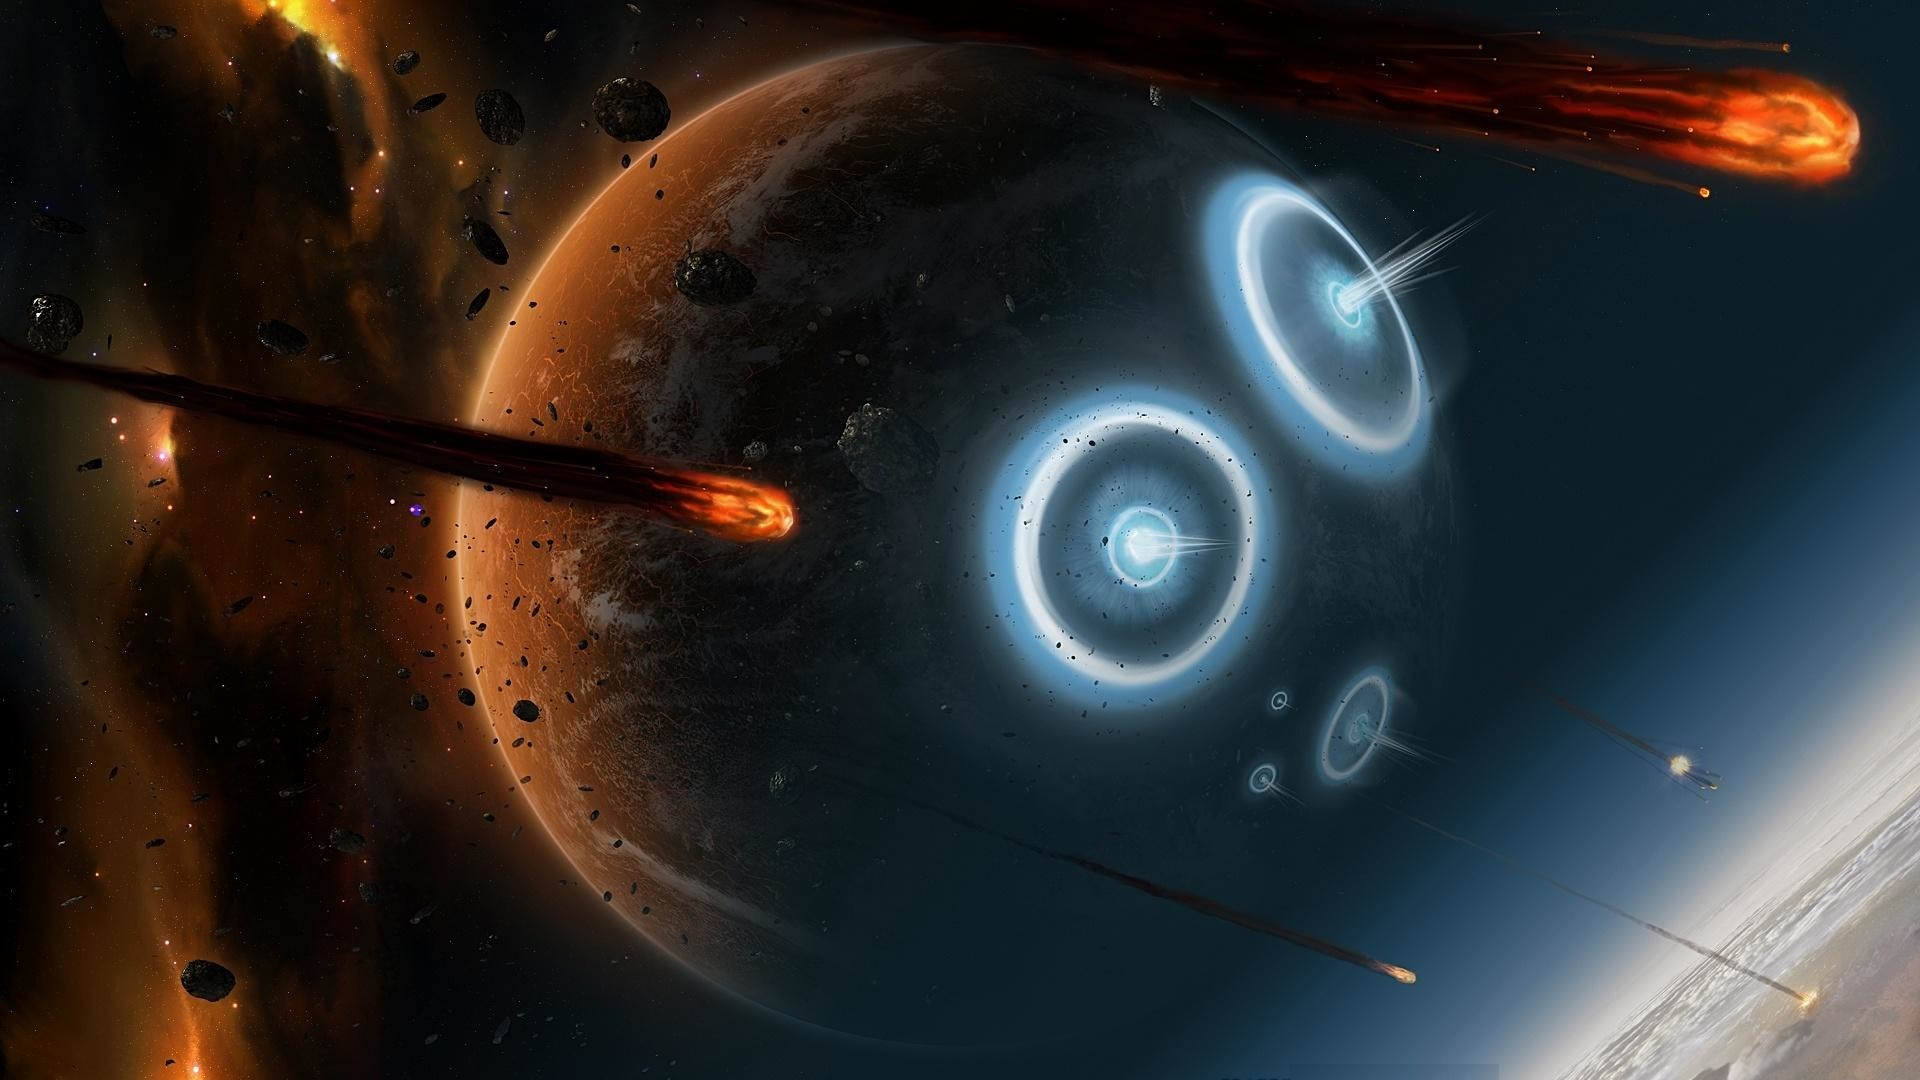 Download-free-Outer-Space-Wallpapers